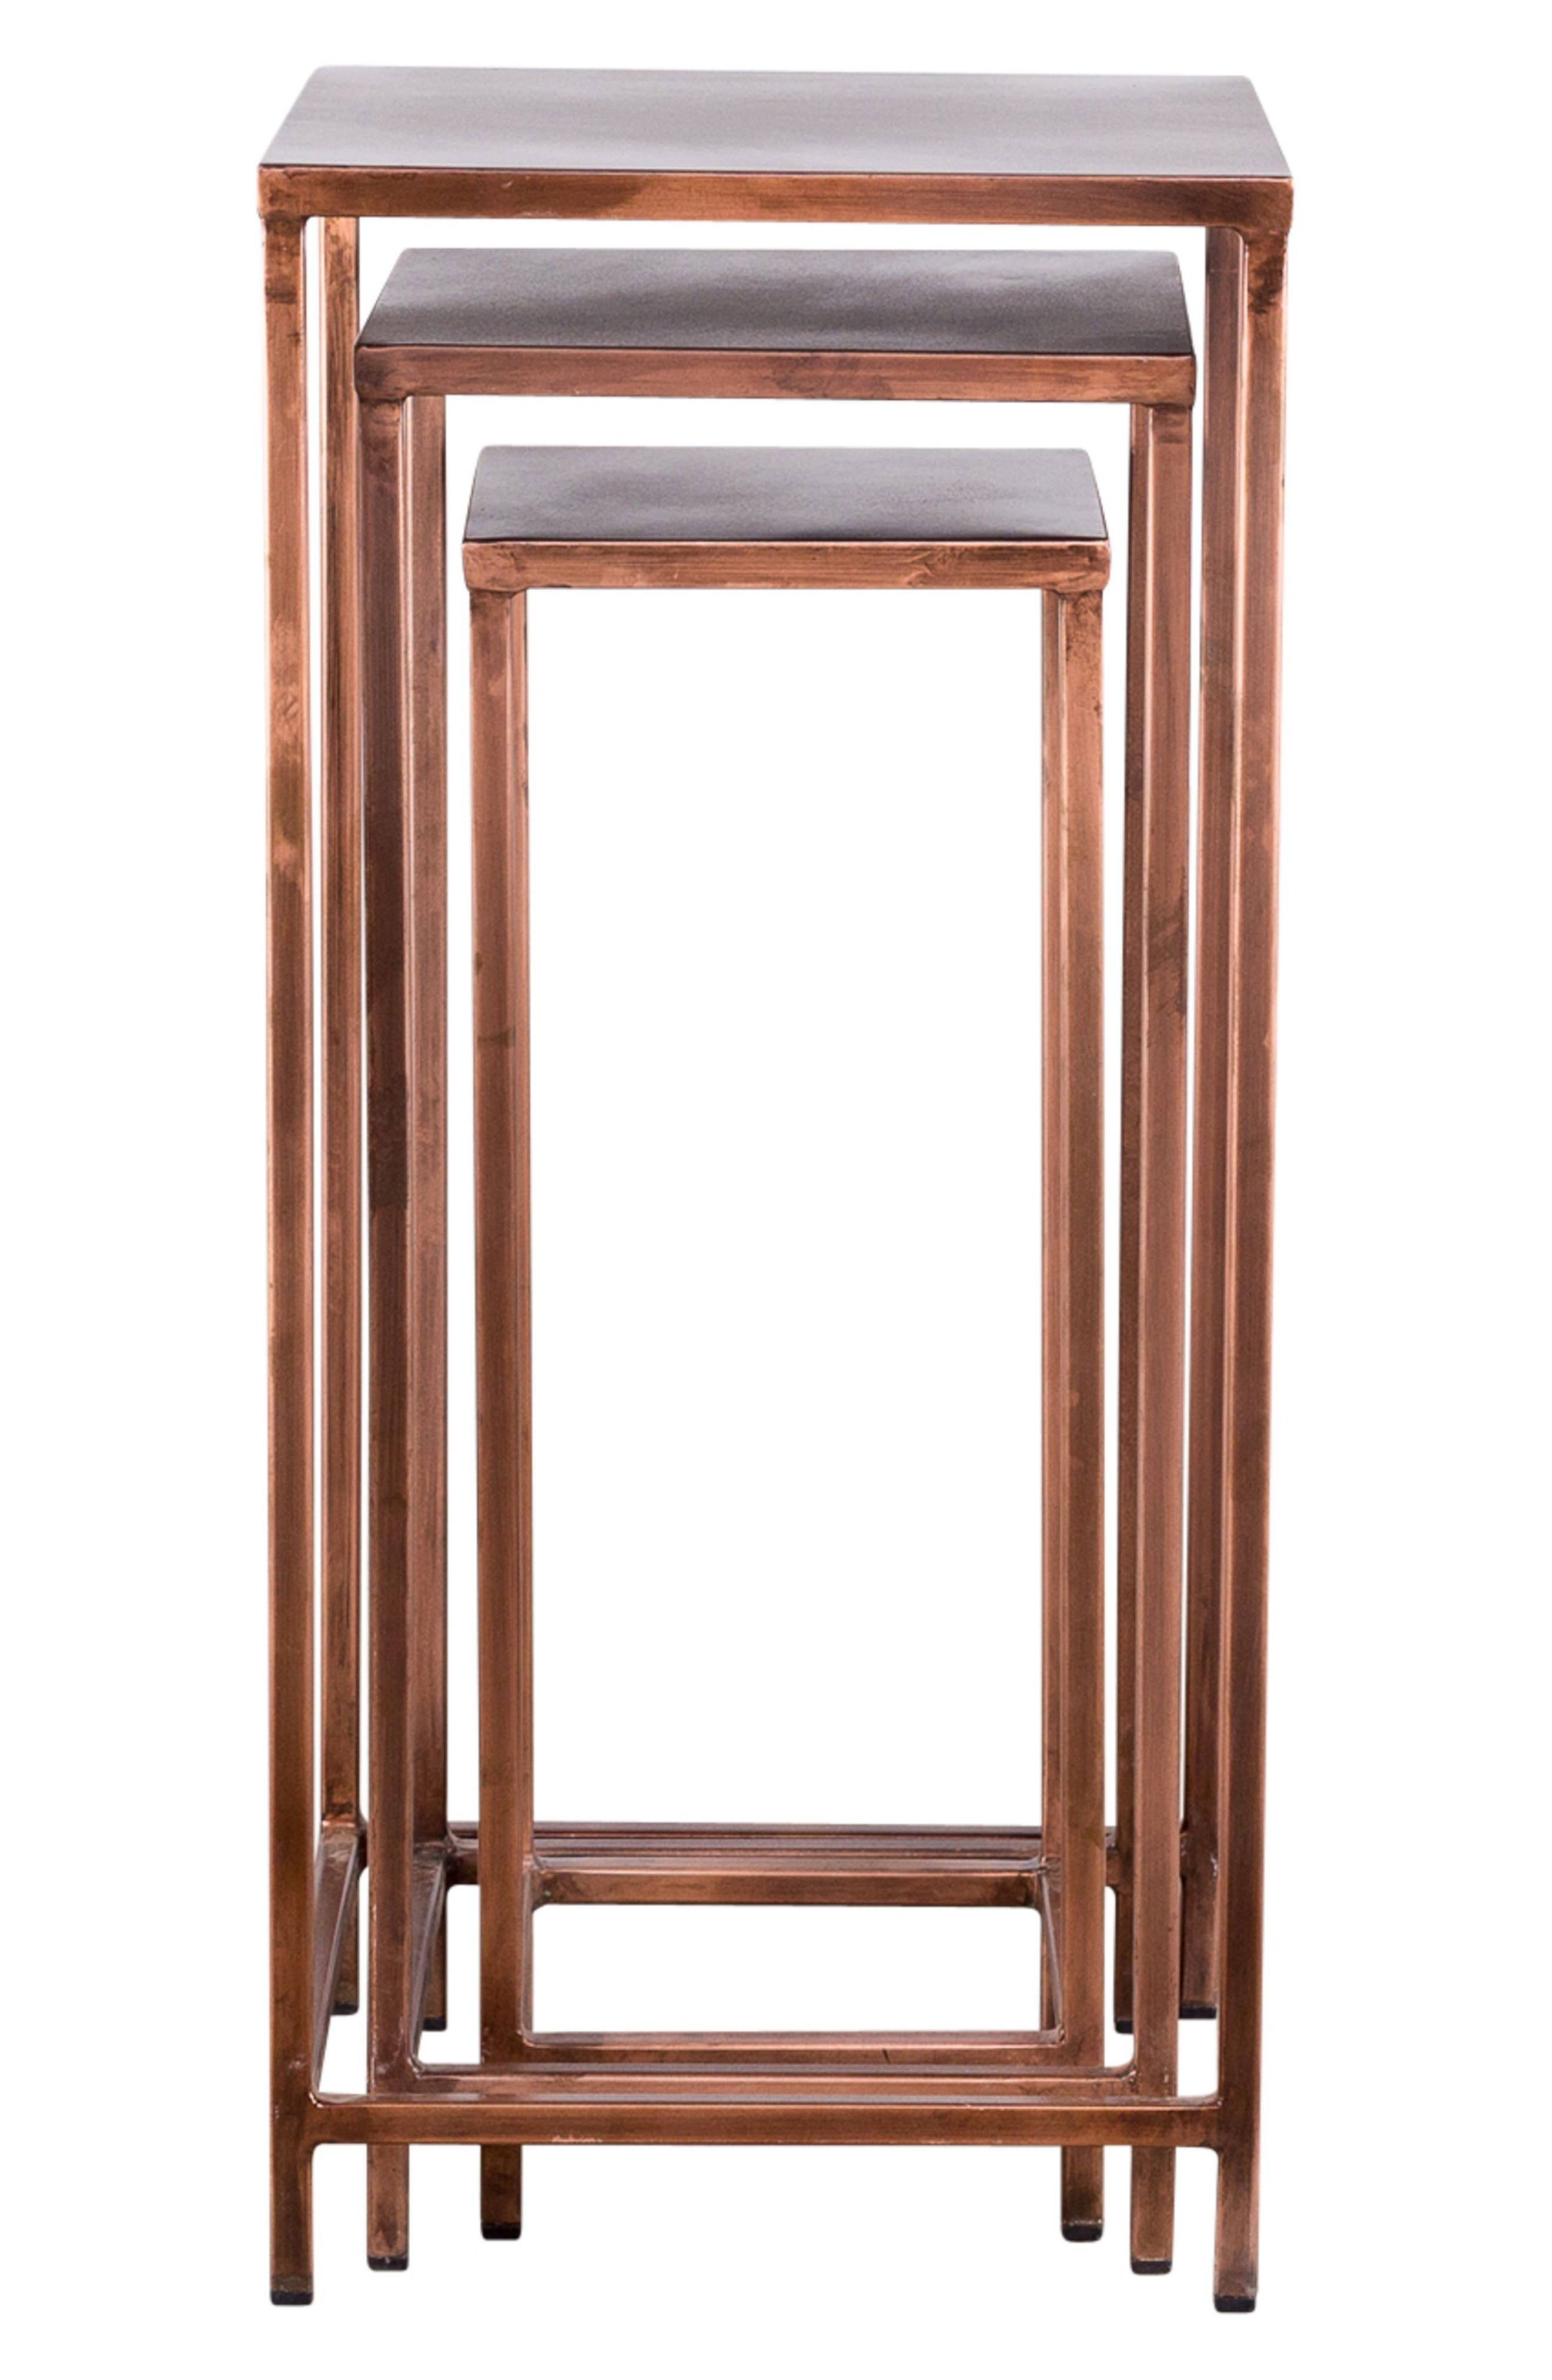 Pollock Set of 3 Tall Nesting Tables,                         Main,                         color, COPPER